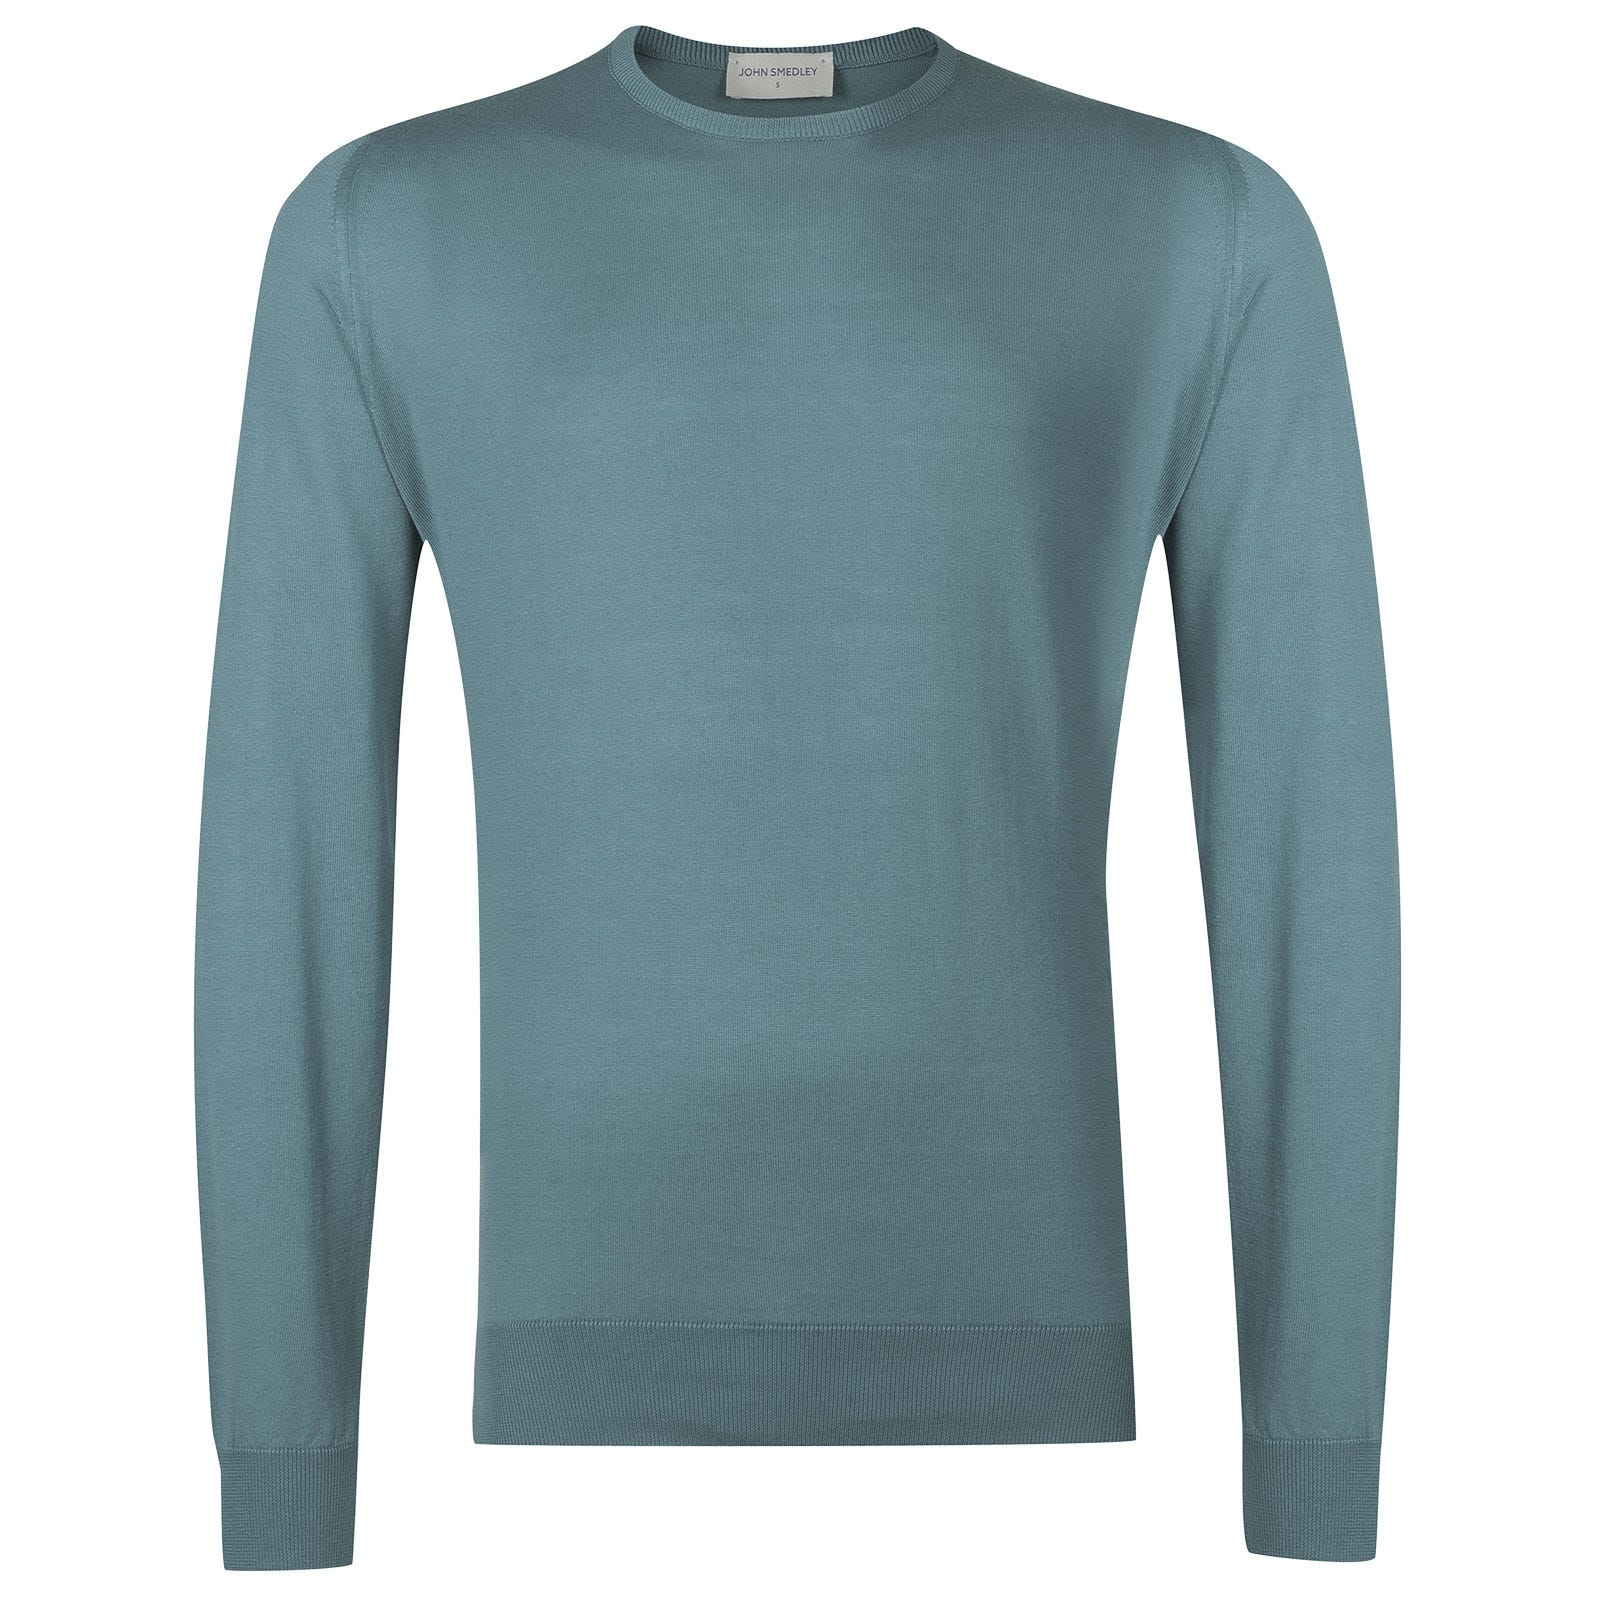 John Smedley hatfield Sea Island Cotton Pullover in Summit Blue-XL